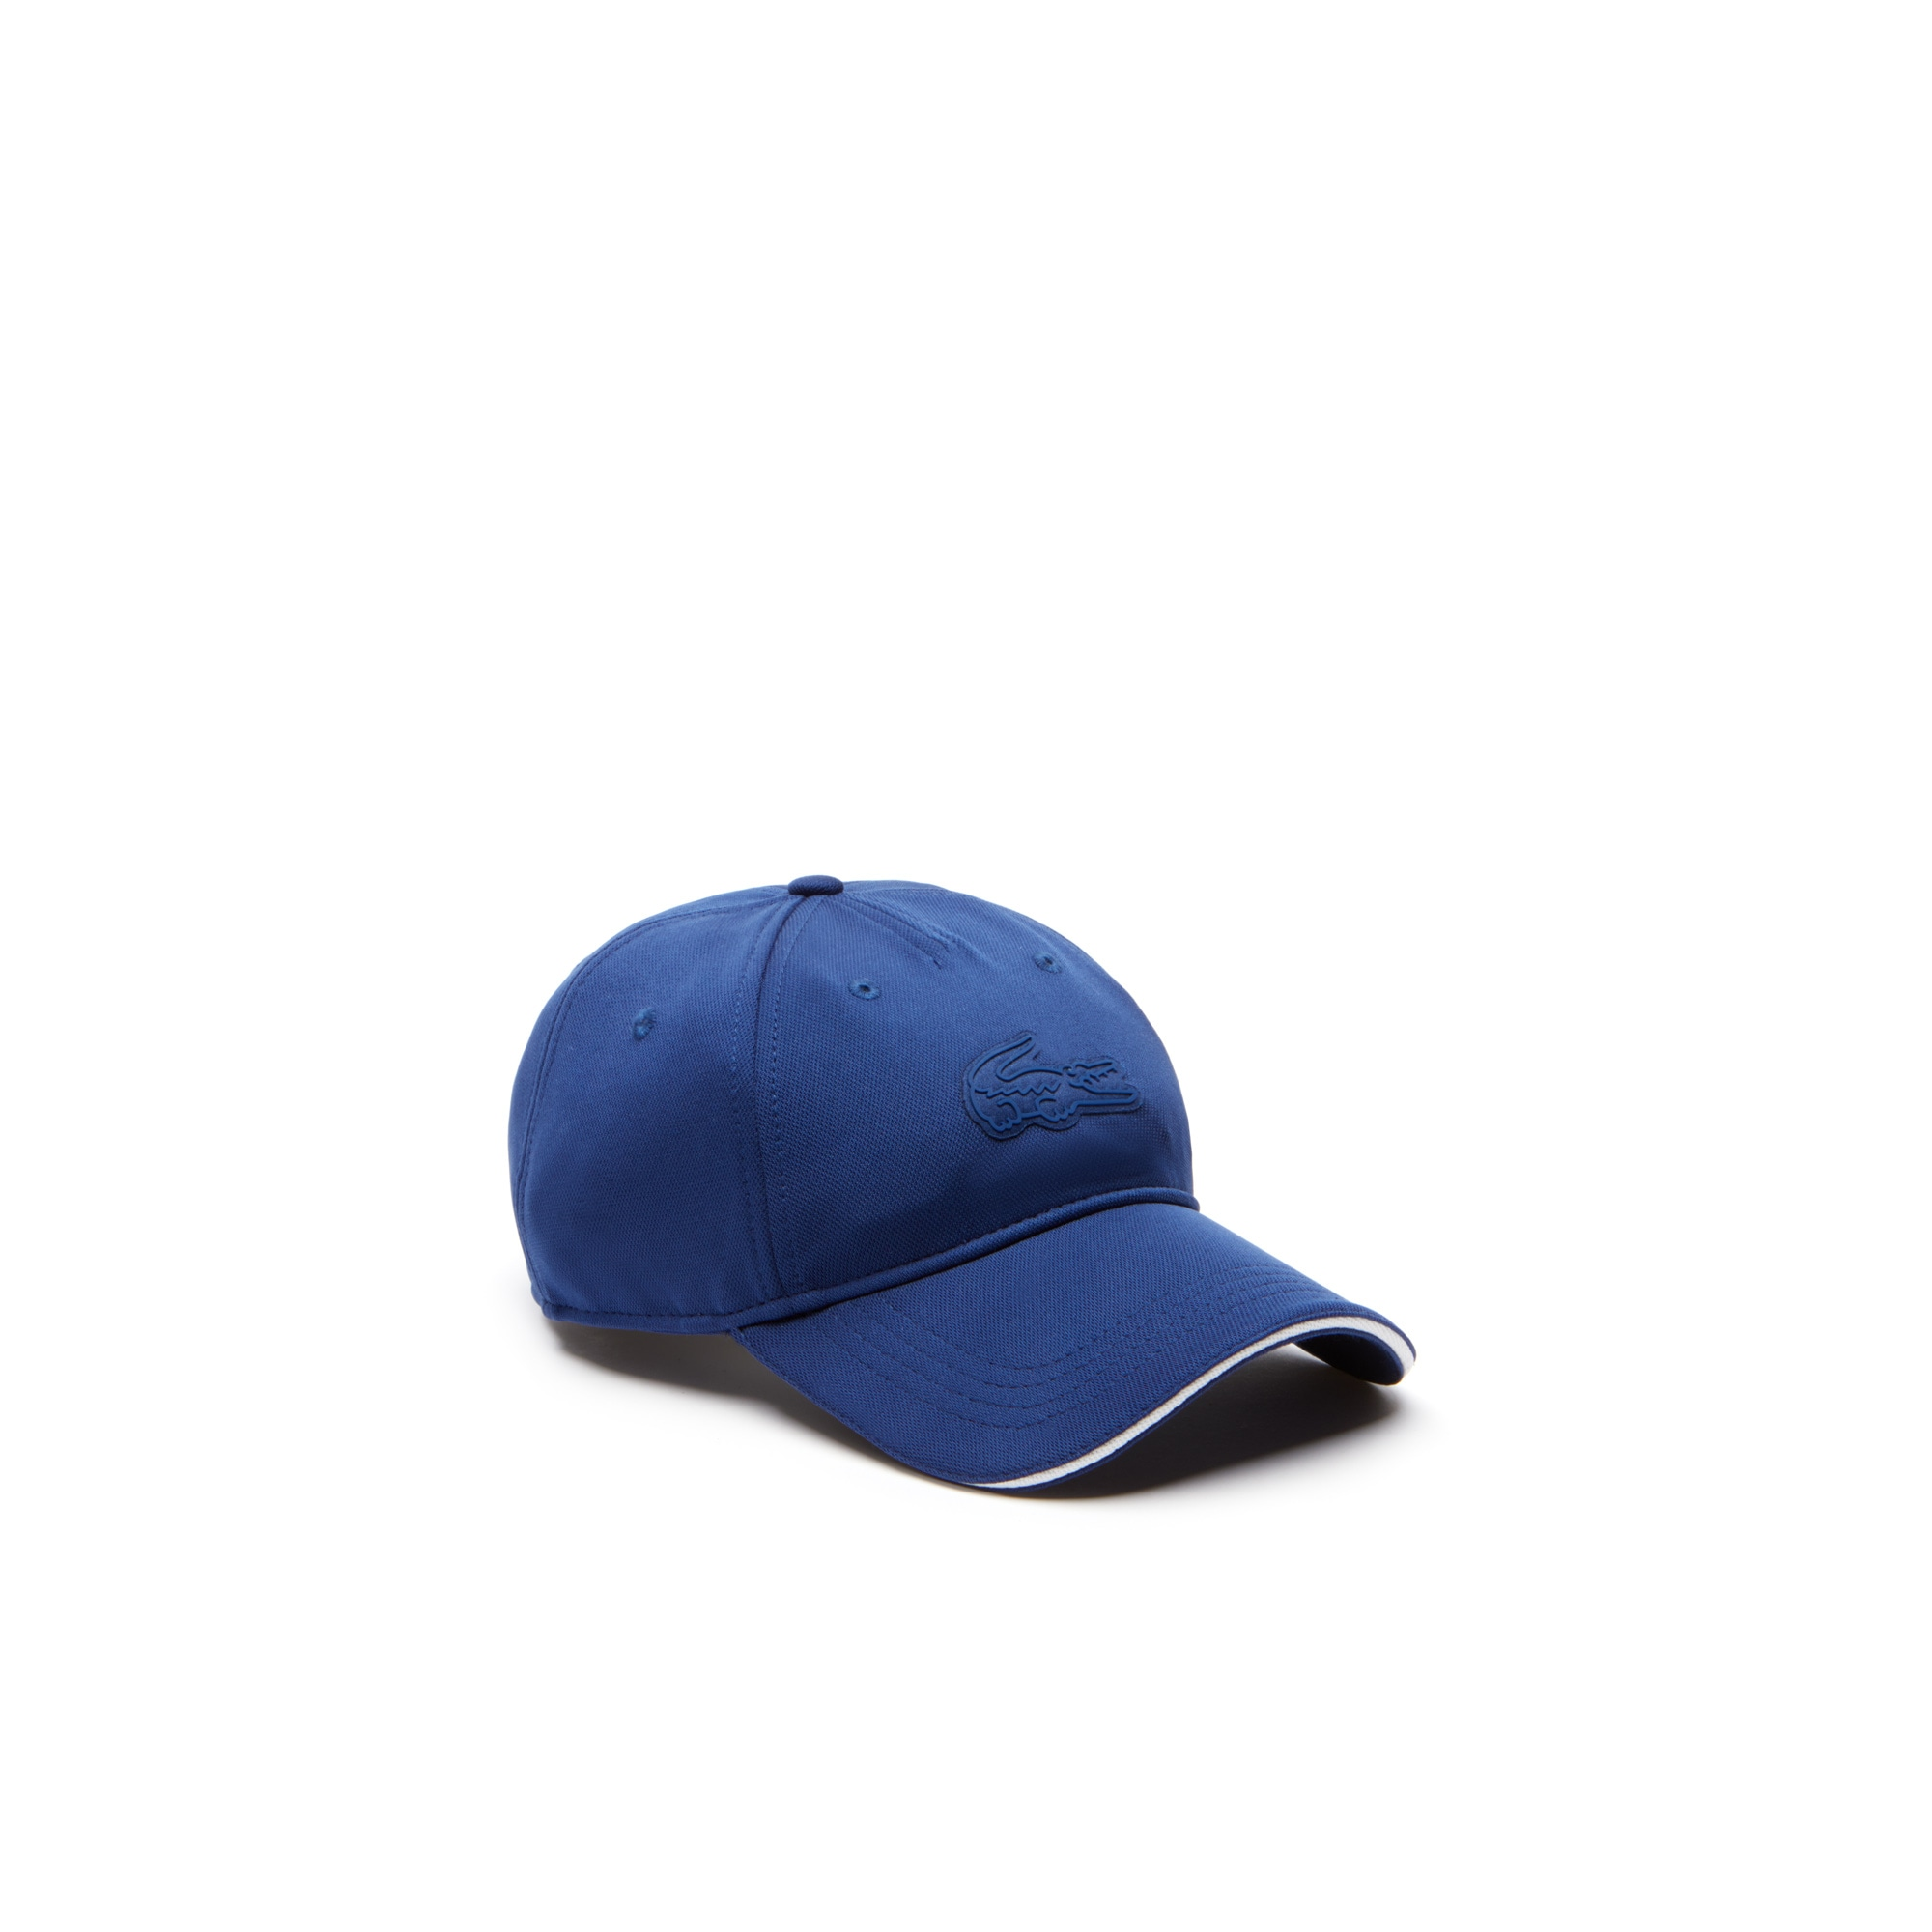 라코스테 Lacoste Unisex SPORT Oversized Crocodile Technical Pique Golf Cap,Navy Blue / White / Navy Blue